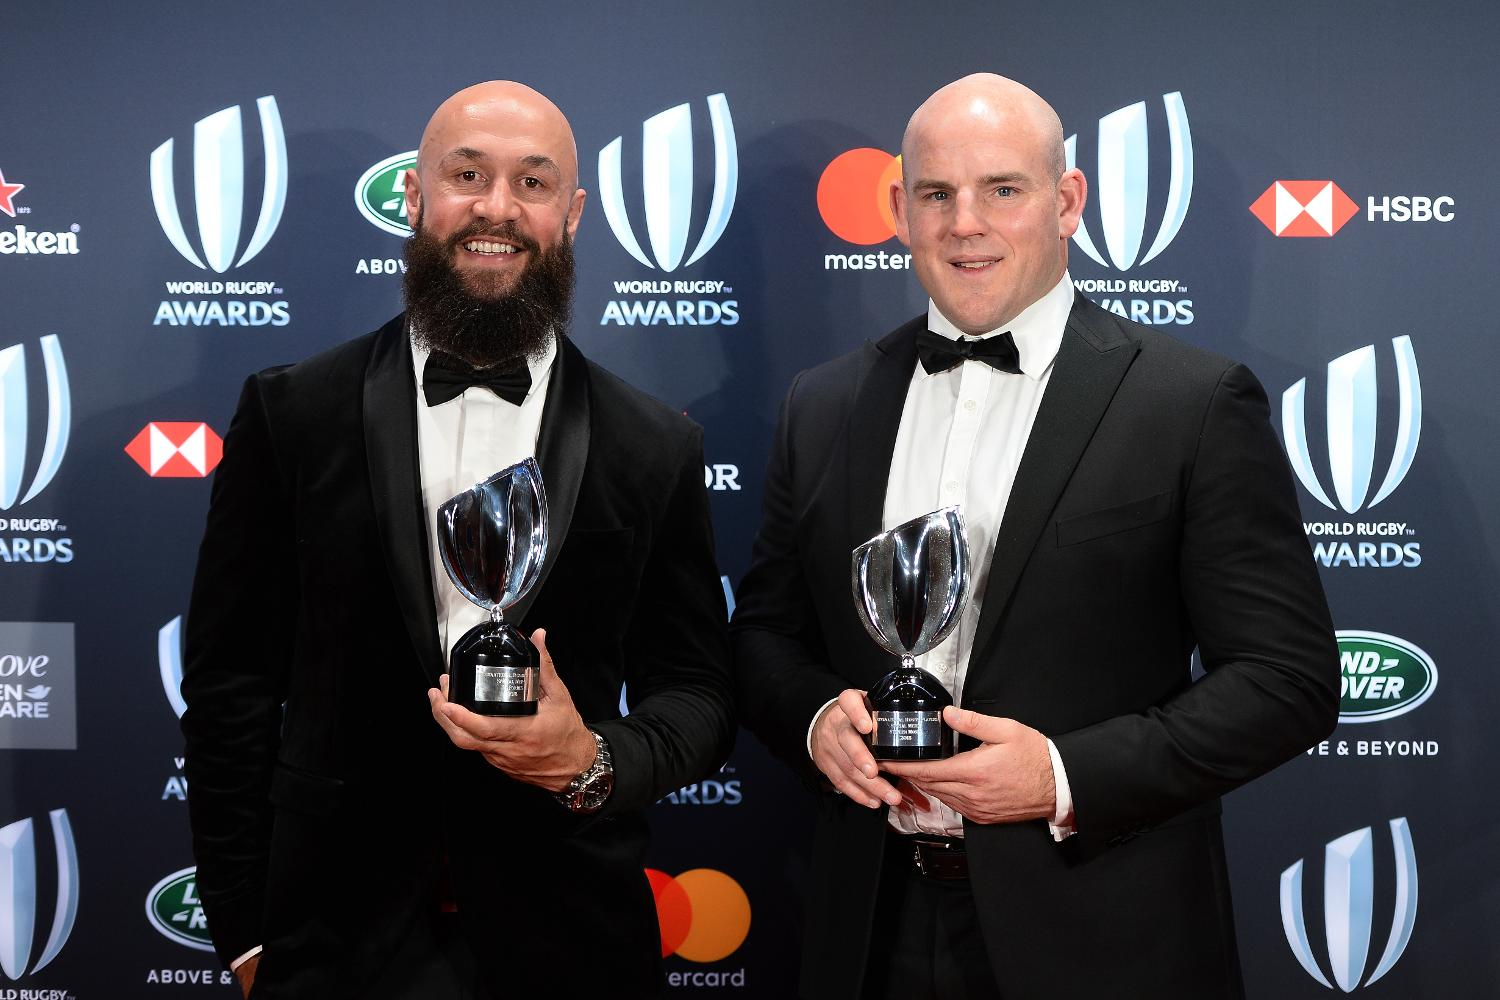 World Rugby Awards 2018